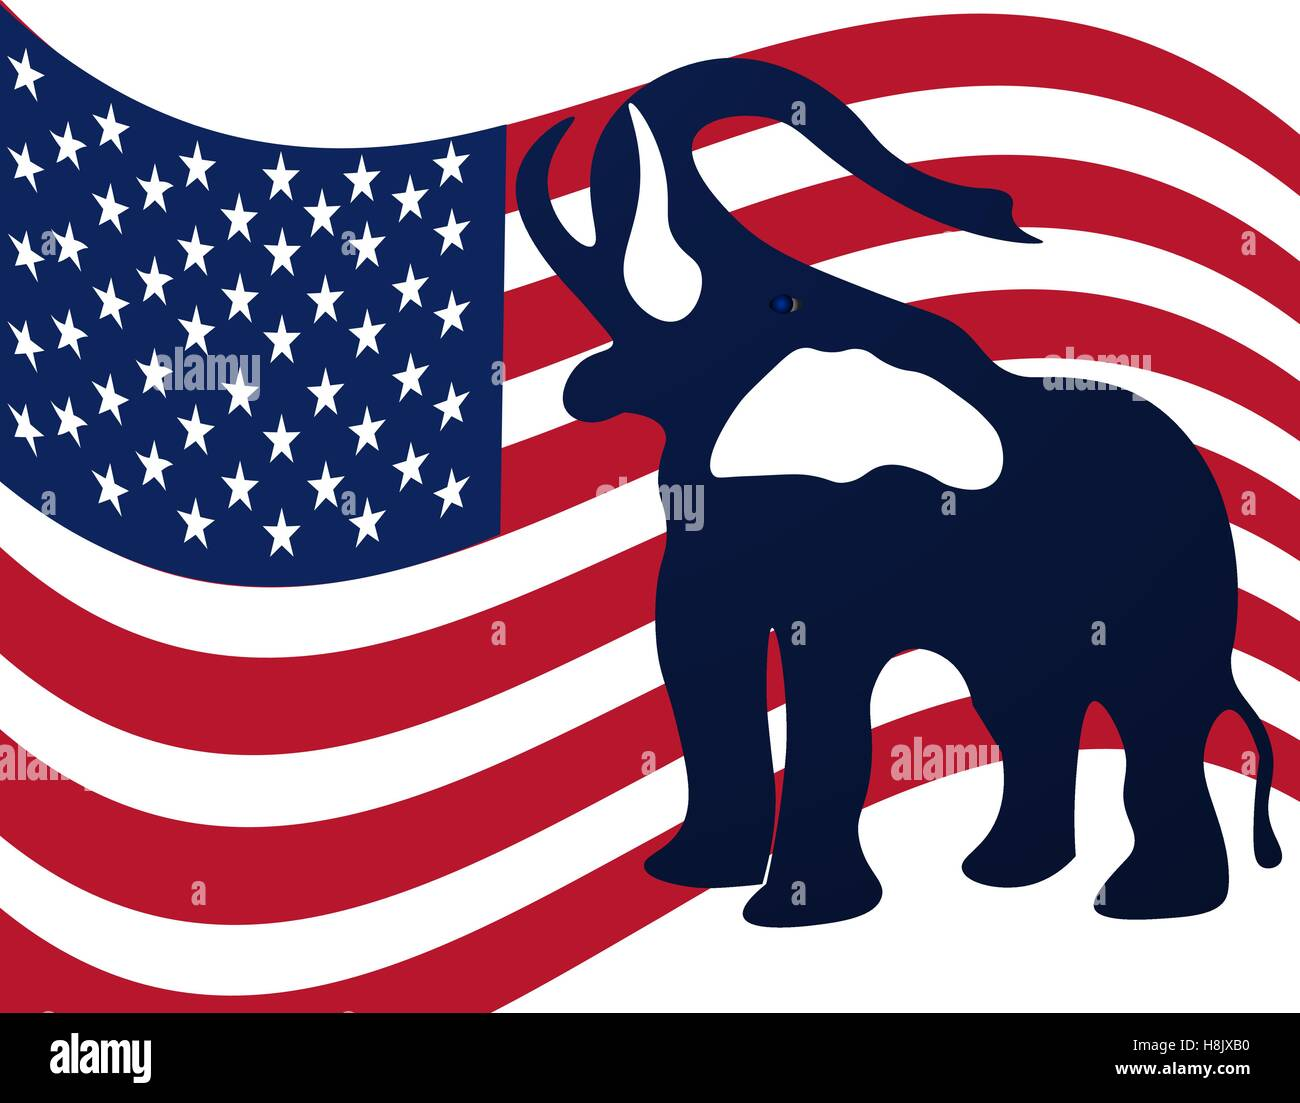 Republican elephant in the background of the American flag. Republican victory in US elections. illustration - Stock Image